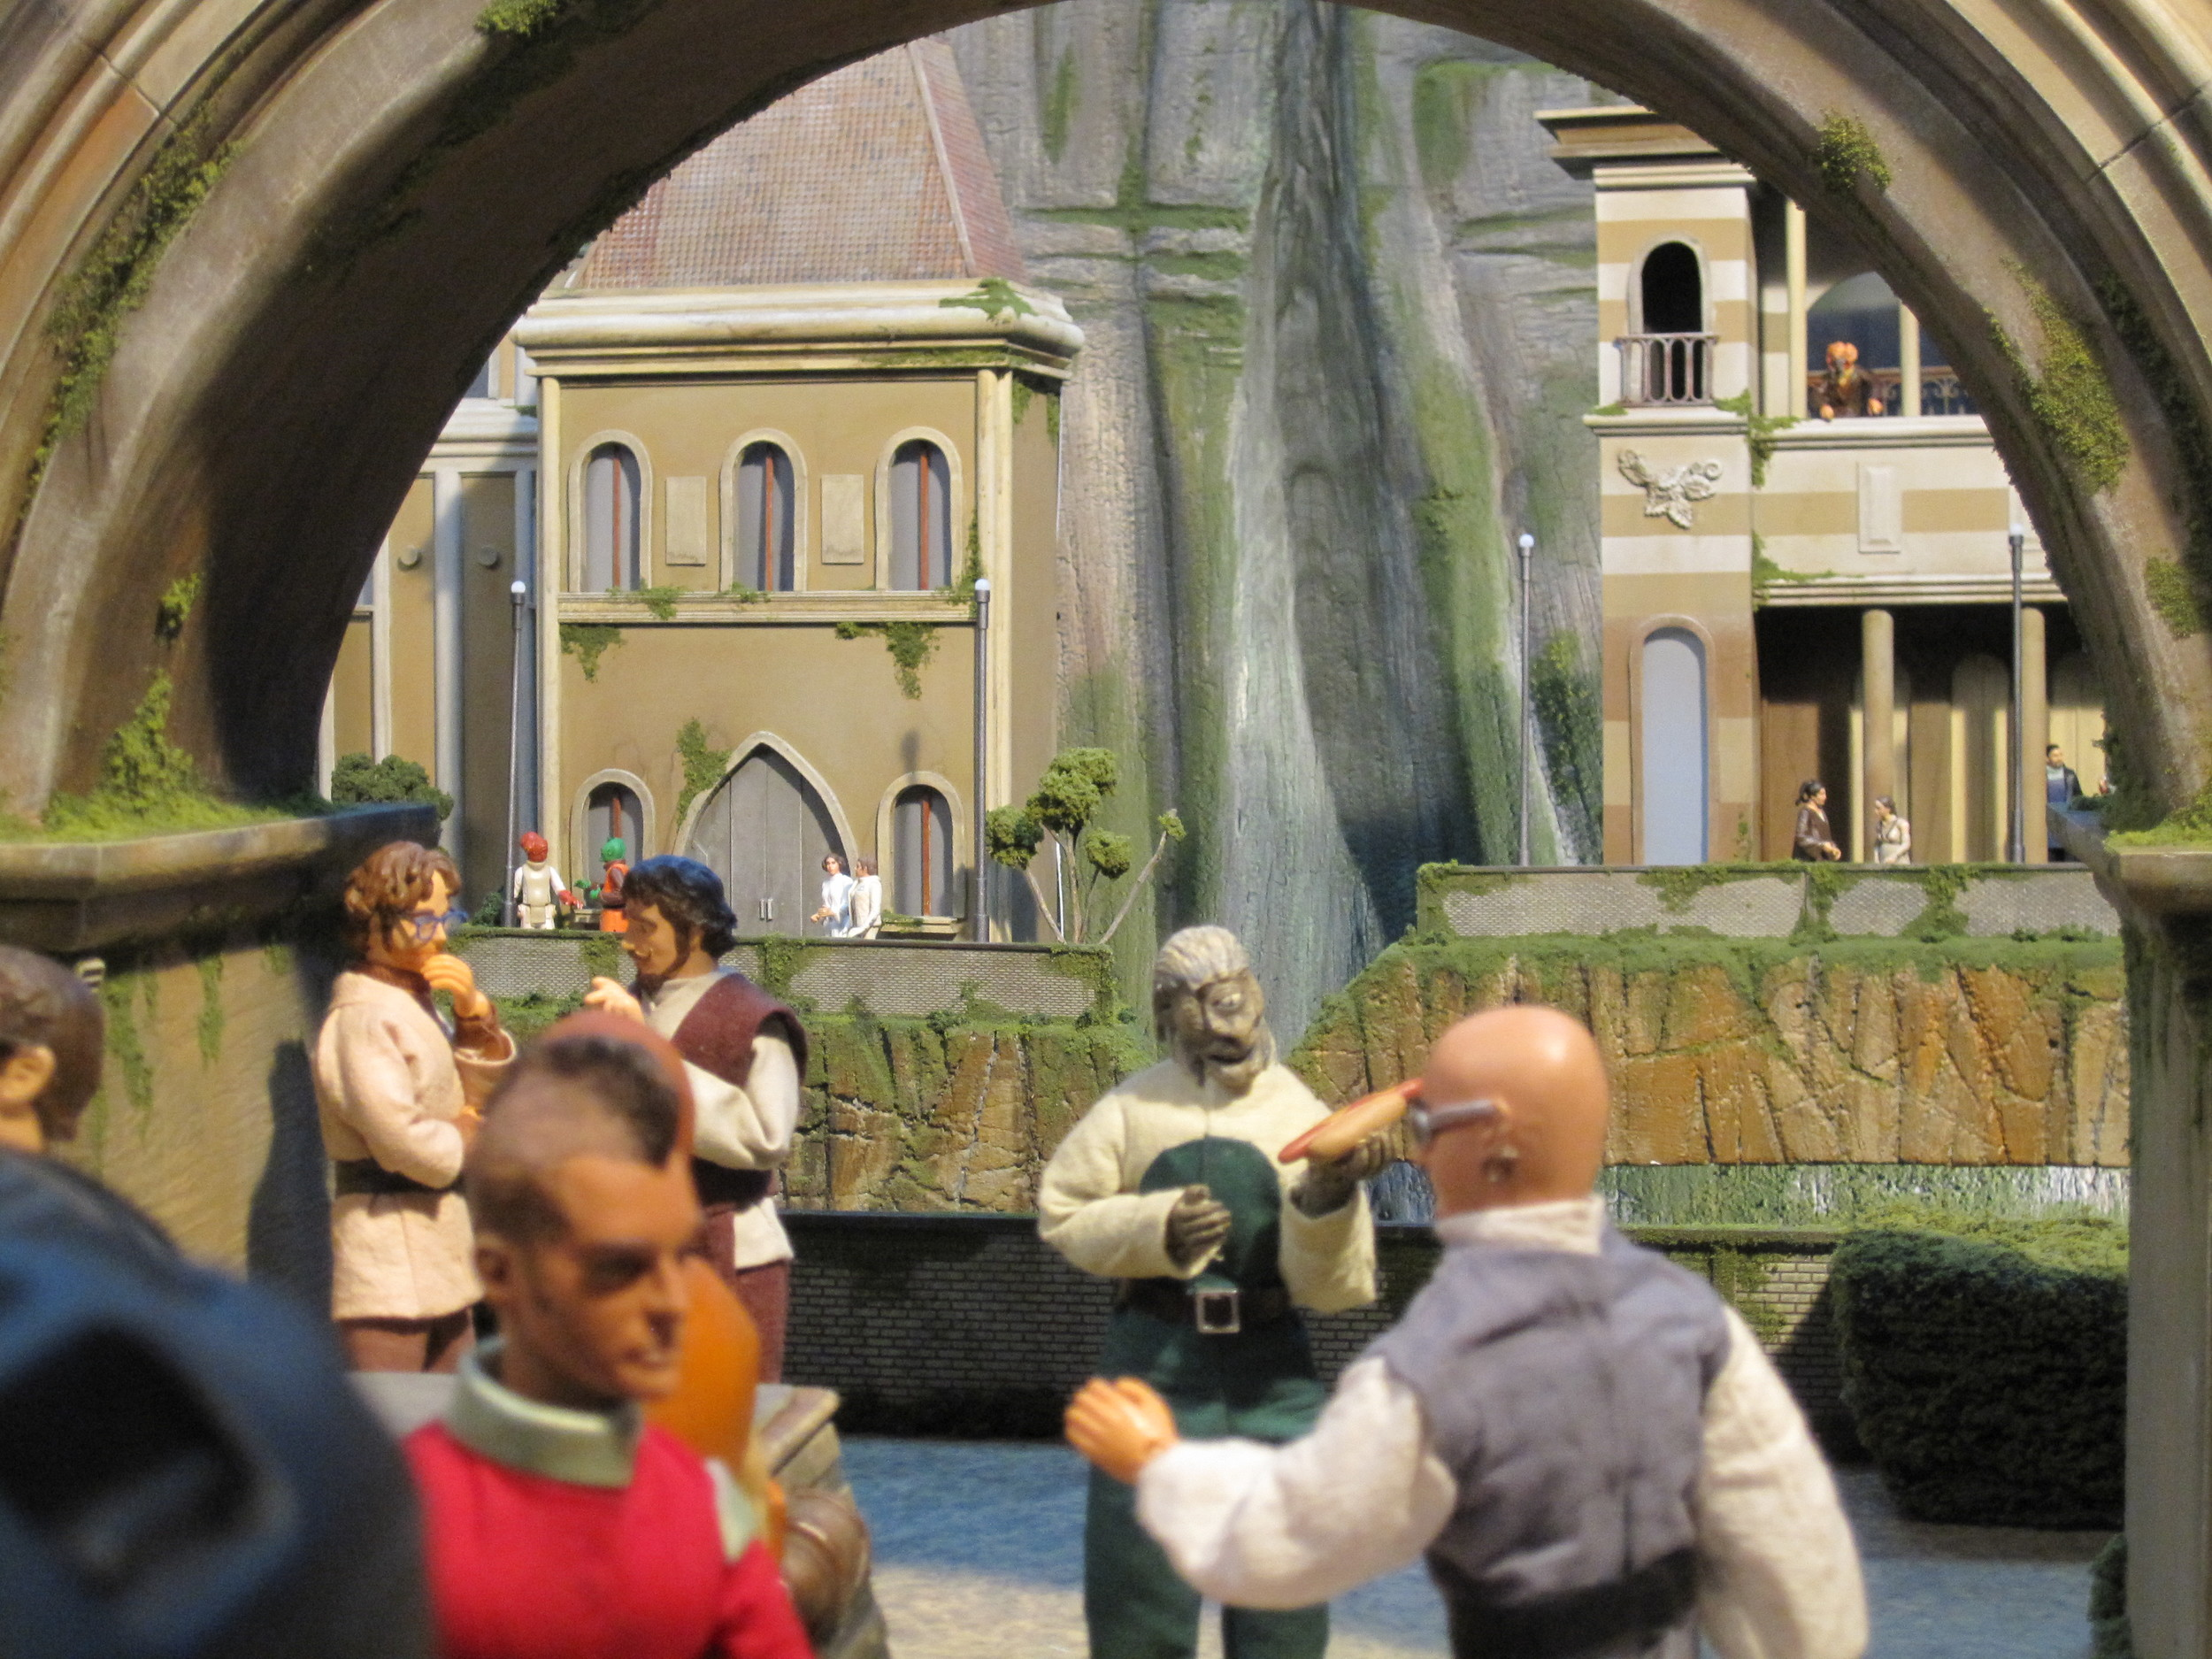 Robot Chicken Star Wars 2 Image 45.JPG